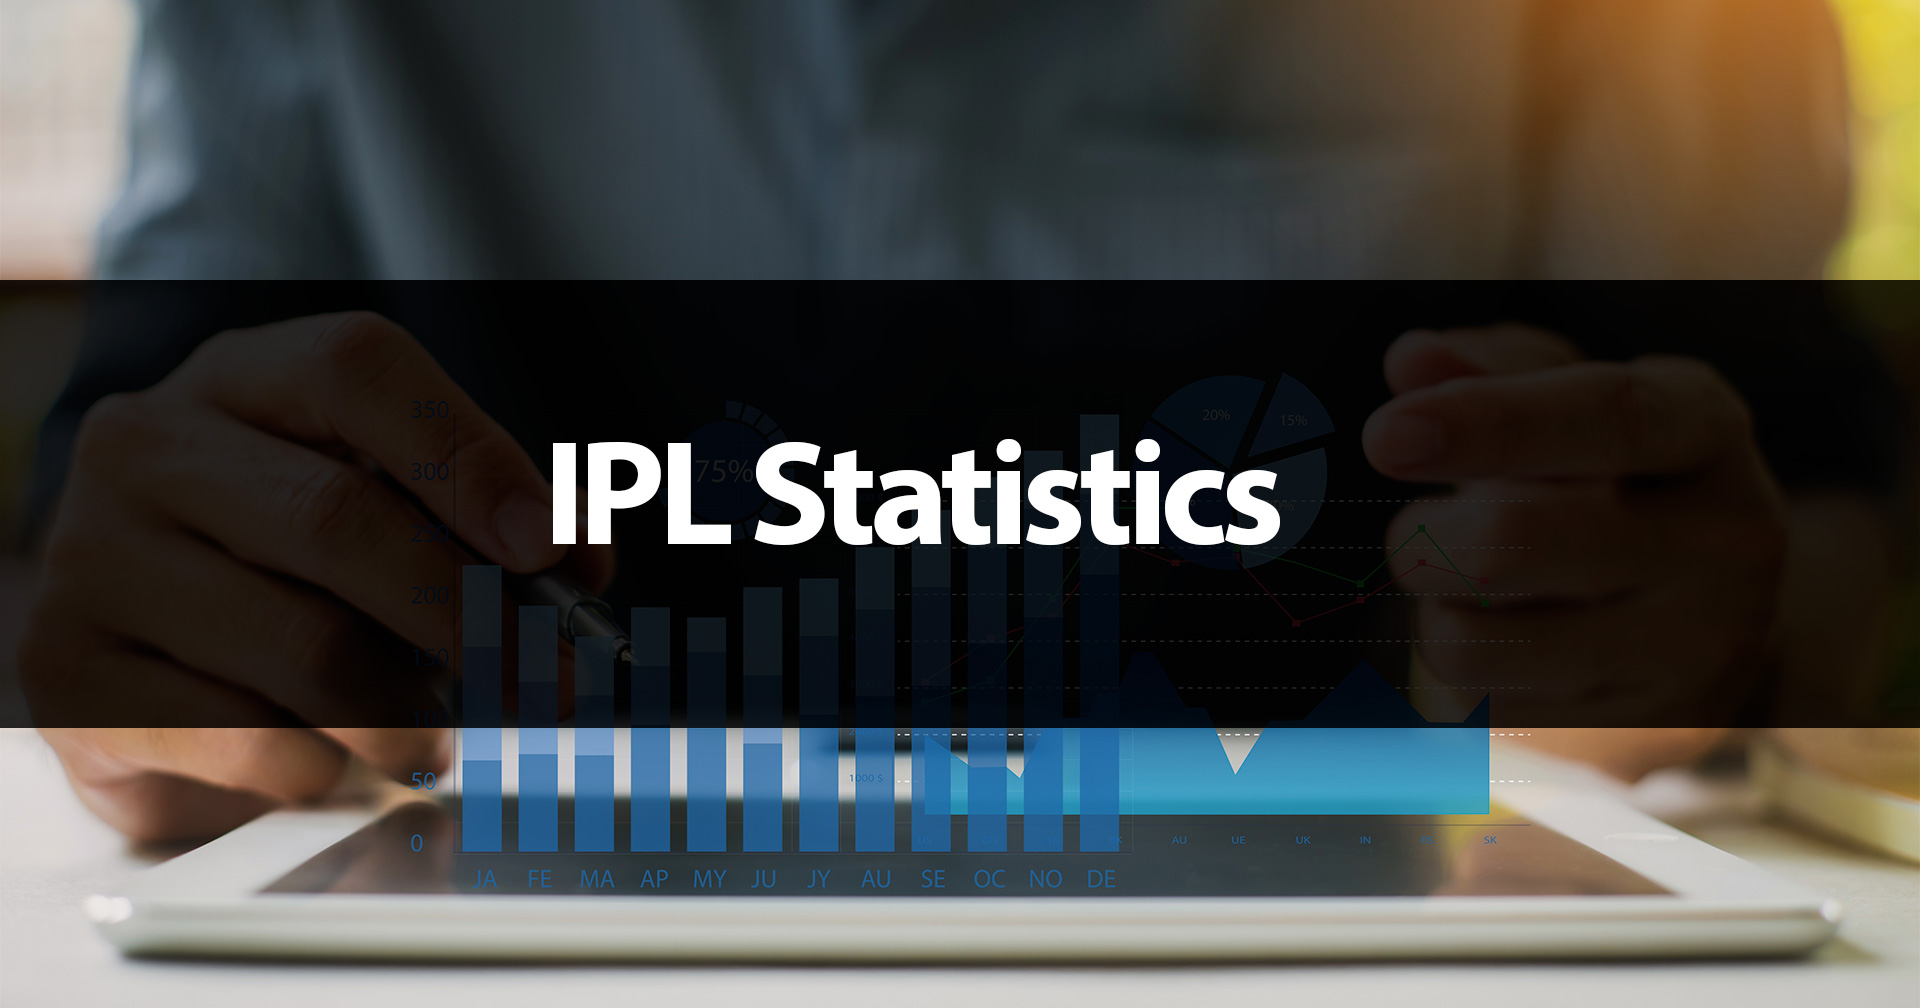 Study statistics during IPL mathces to place even more profitable bets on cricket.